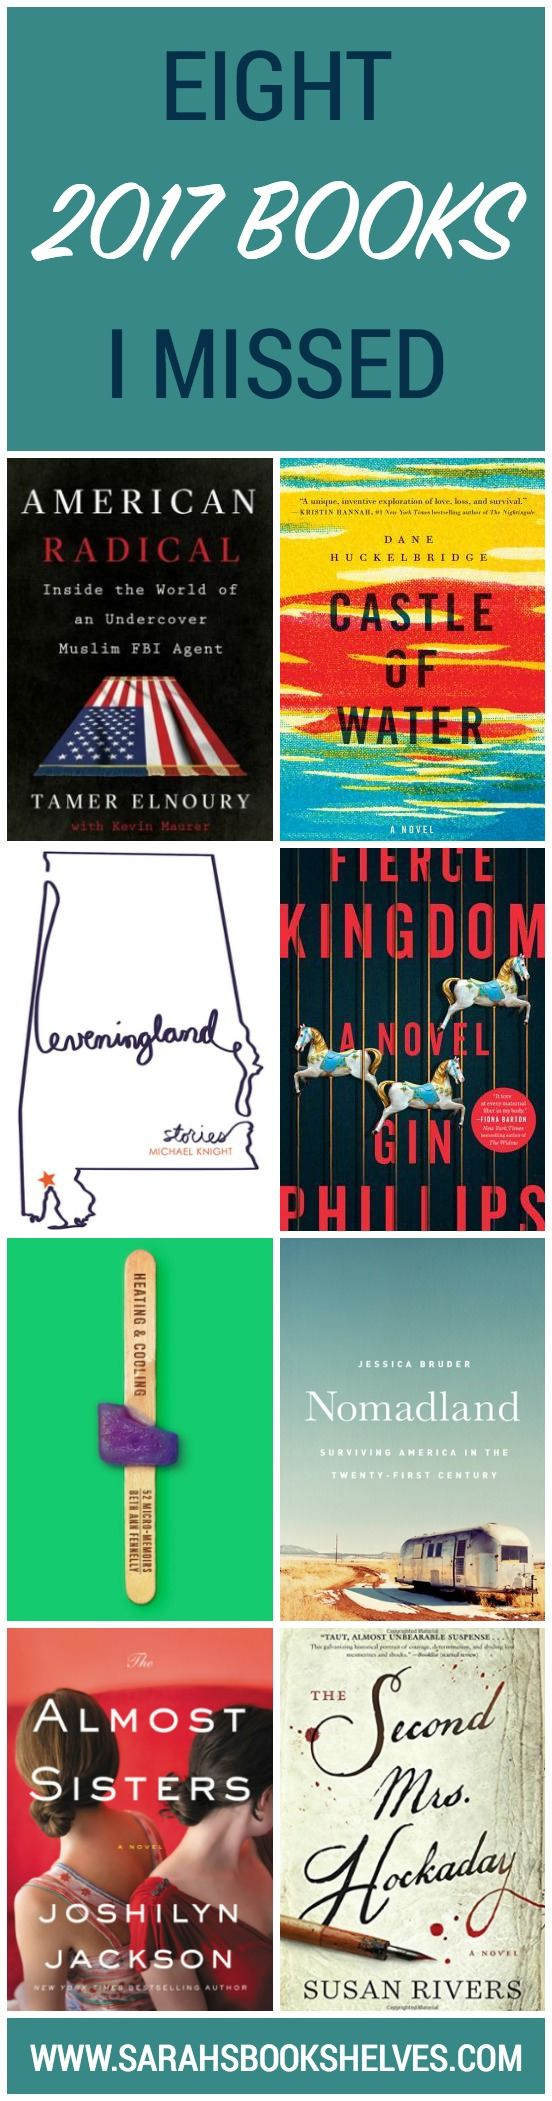 Eight 2017 Books I Missed...and most definitely plan to read next year (at least some of them).